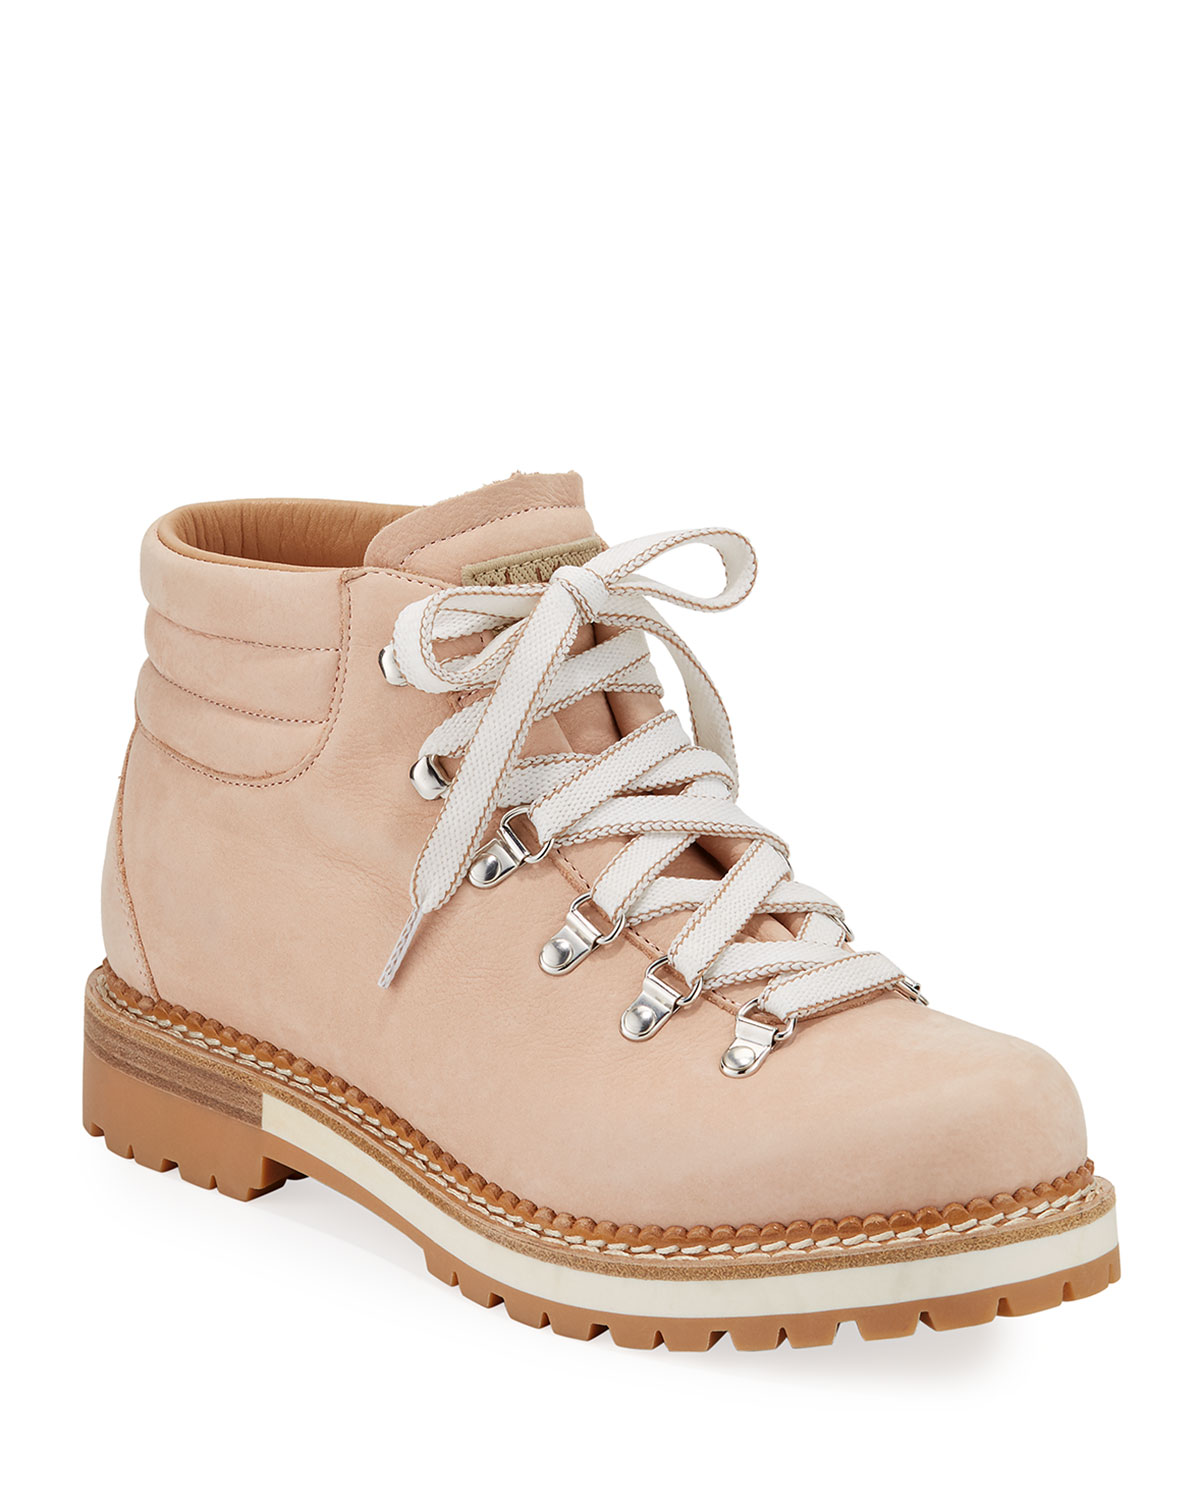 Marlena Leather Lace-Up Boots